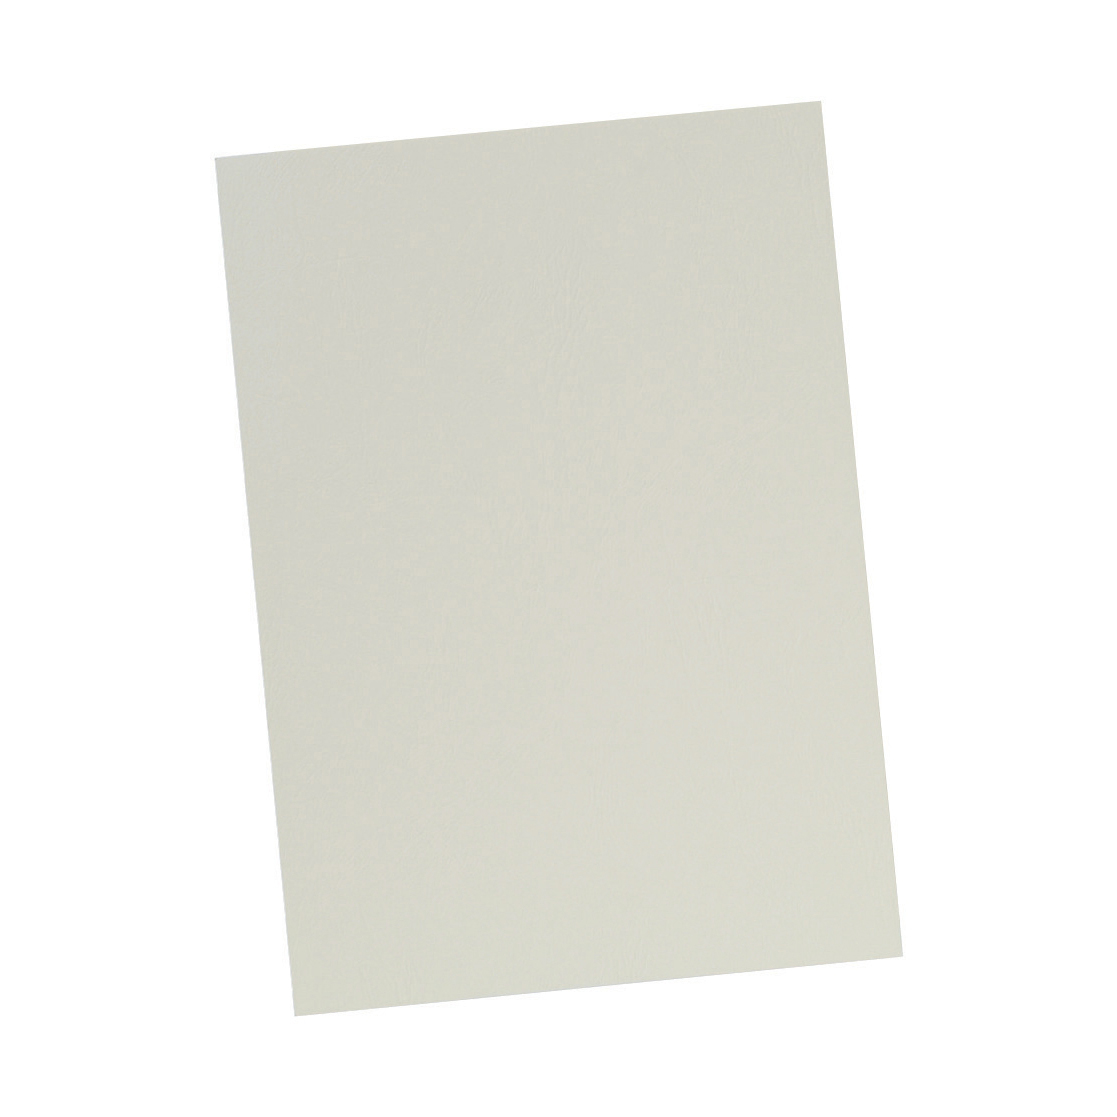 Cover Boards 5 Star Office Binding Covers 240gsm Leathergrain A4 Ivory [Pack 100]